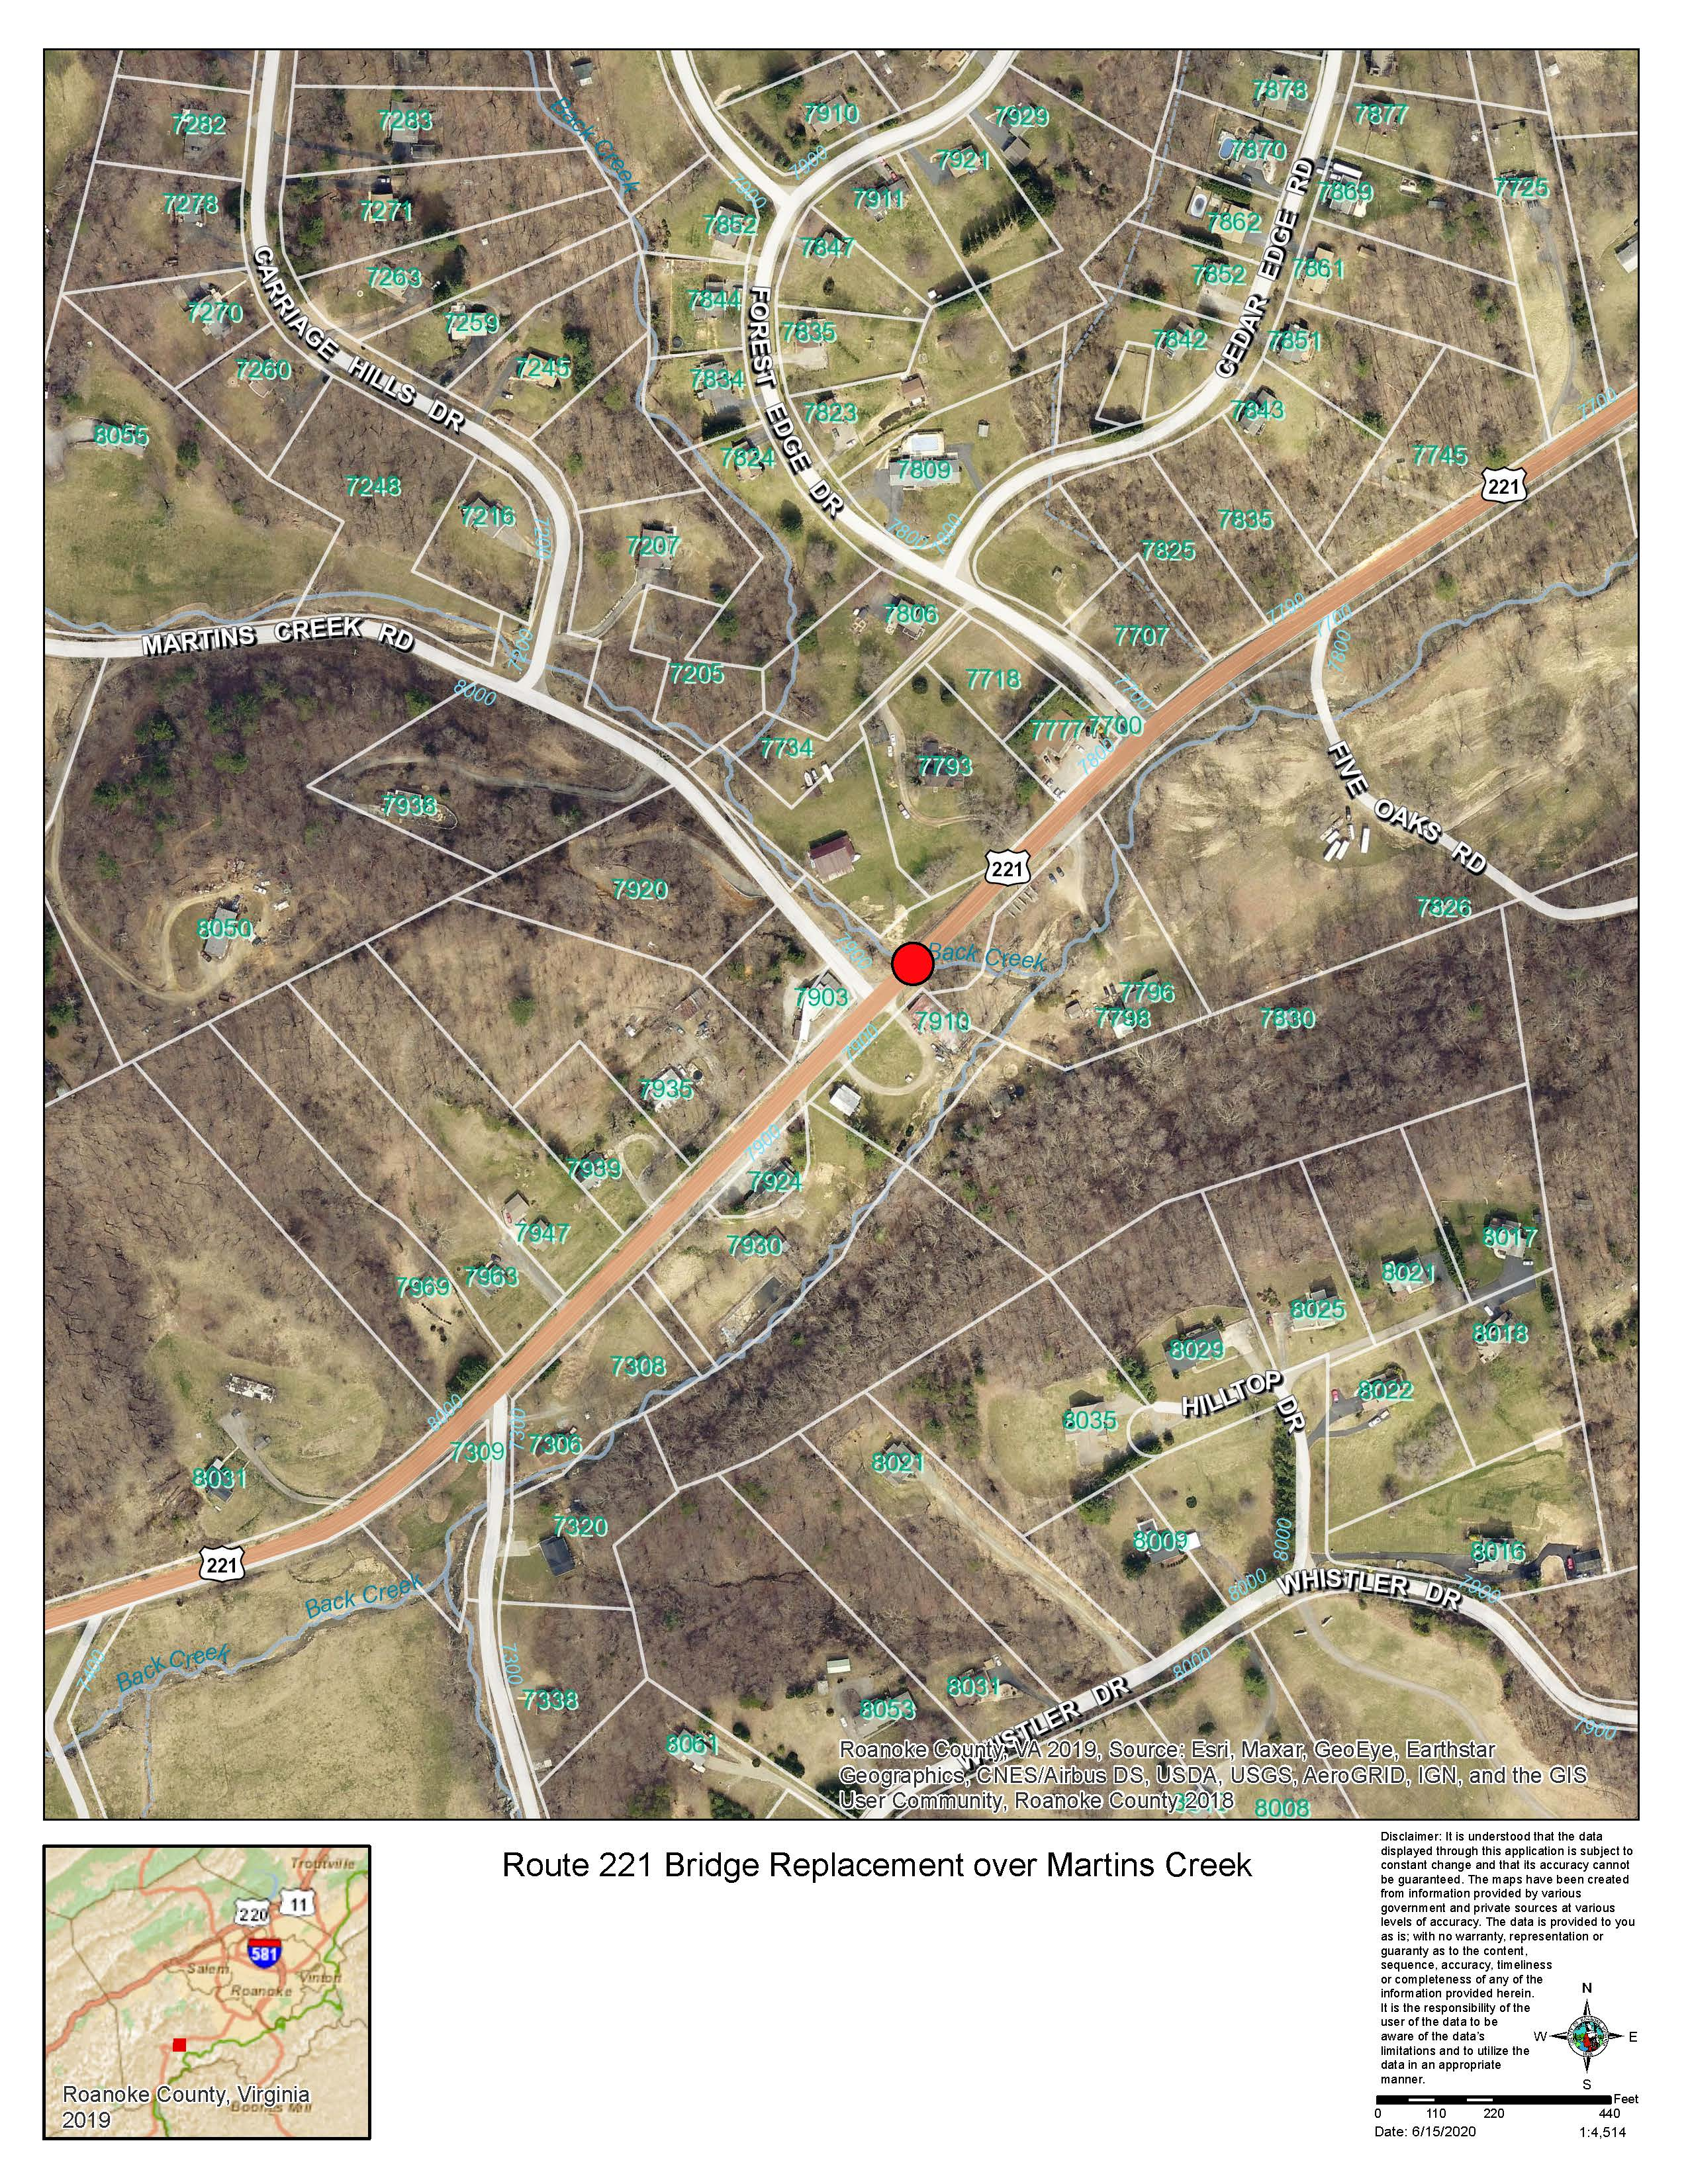 Rt 221 Bridge Replacement at Martins Creek Map